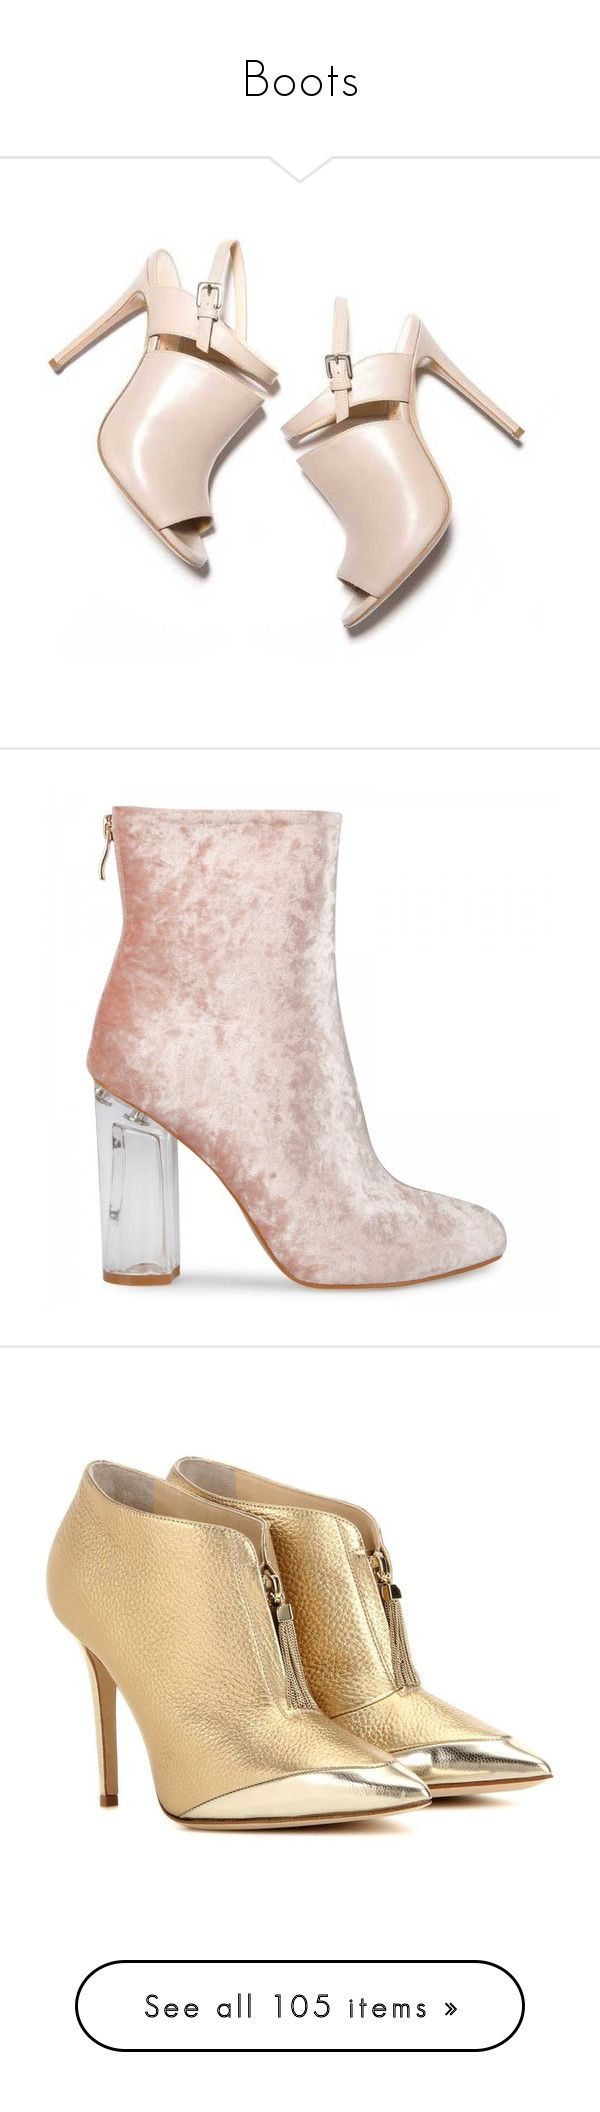 """Boots"" by francescar ❤ liked on Polyvore featuring shoes, handcrafted shoes, boots, ankle booties, heels, booties, heeled ankle boots, pink velvet boots, ankle boots and pink ankle boots"